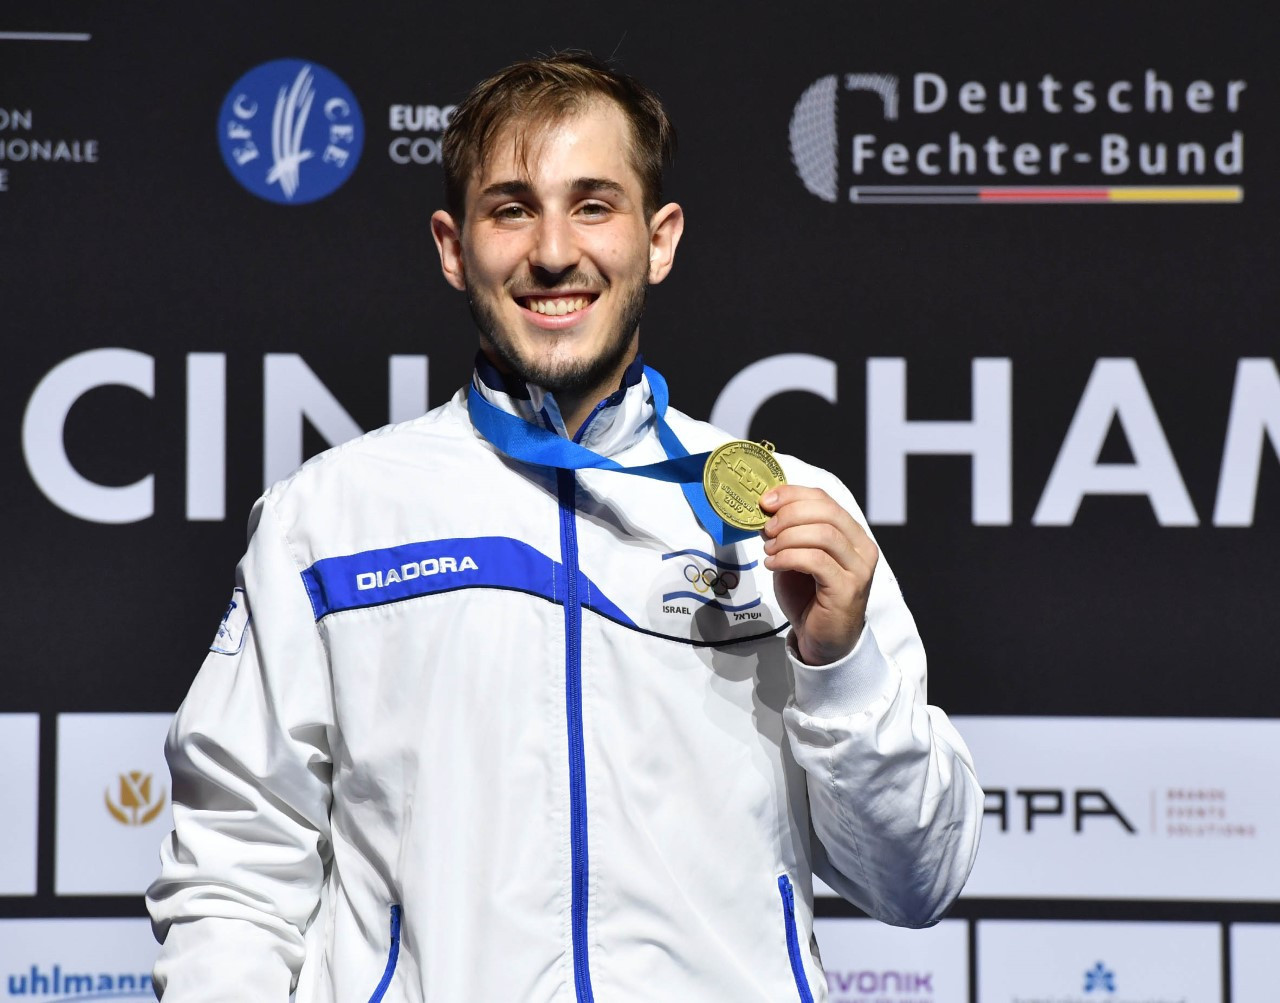 Di Francesca wins fifth European Fencing Championships foil title as Freilich takes shock men's épée victory